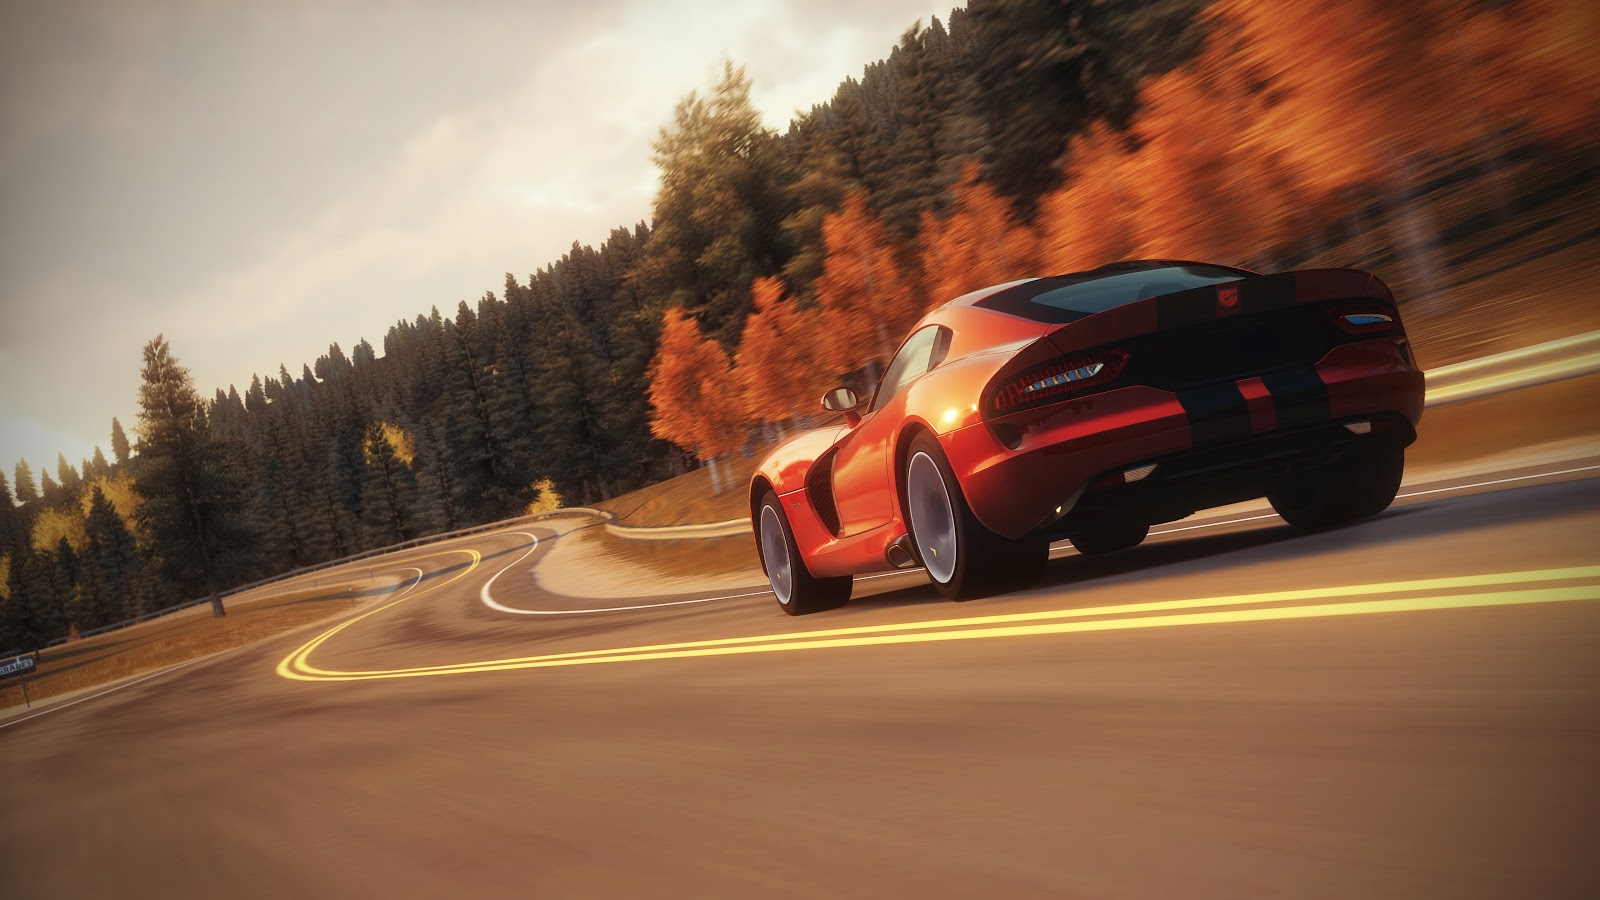 Forza Horizon HD & Widescreen Wallpaper 0.307718518265736